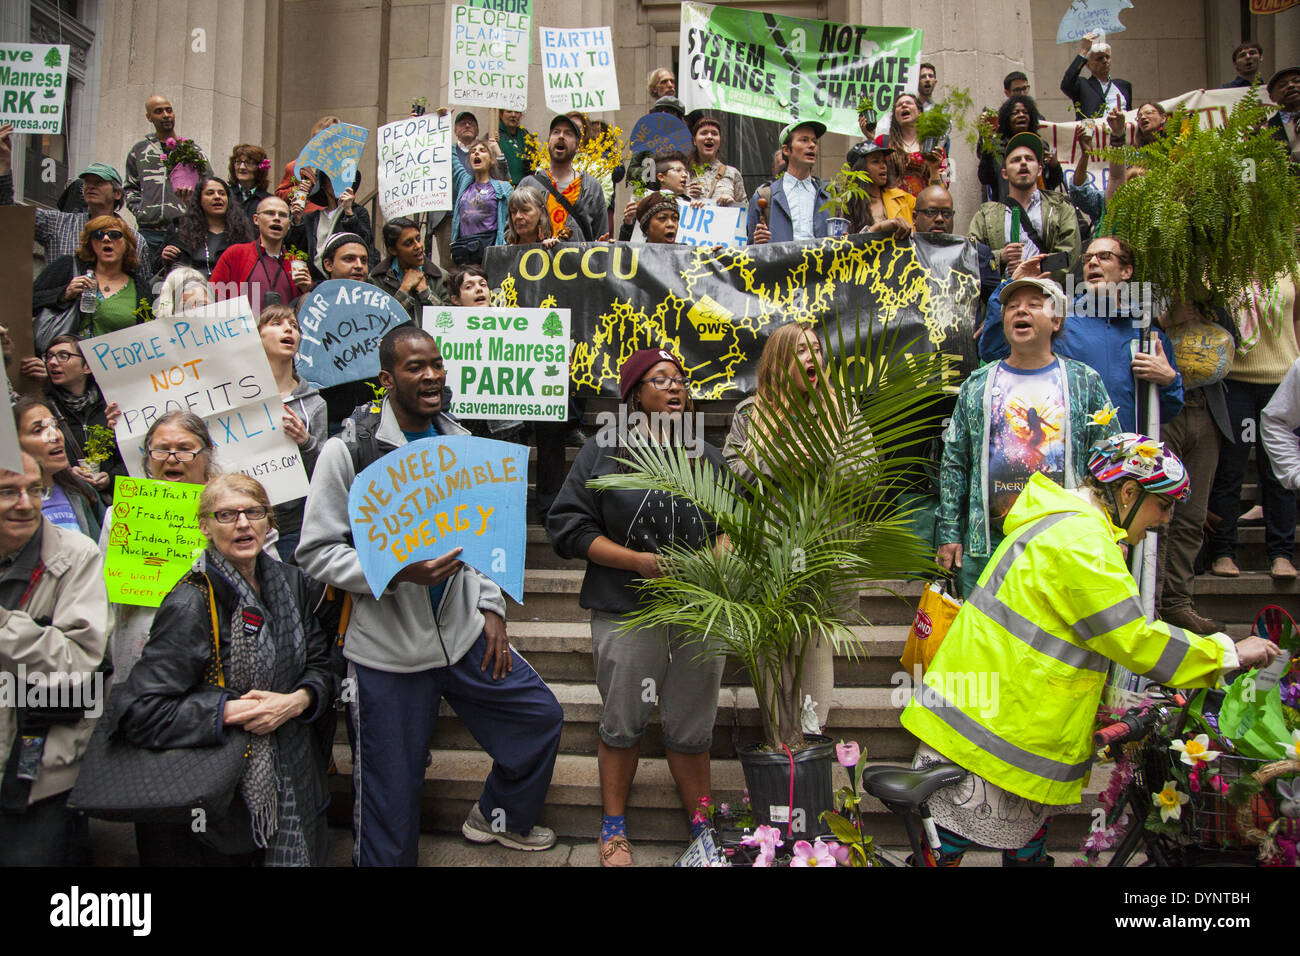 New York, NY, USA , 22nd Apr, 2014. Environmental activists rally on Earth Day at Zuccotti Park, then march to Wall Street calling for system change not climate change. The Occupy movement is still around in NYC it seems. Credit:  David Grossman/Alamy Live News - Stock Image